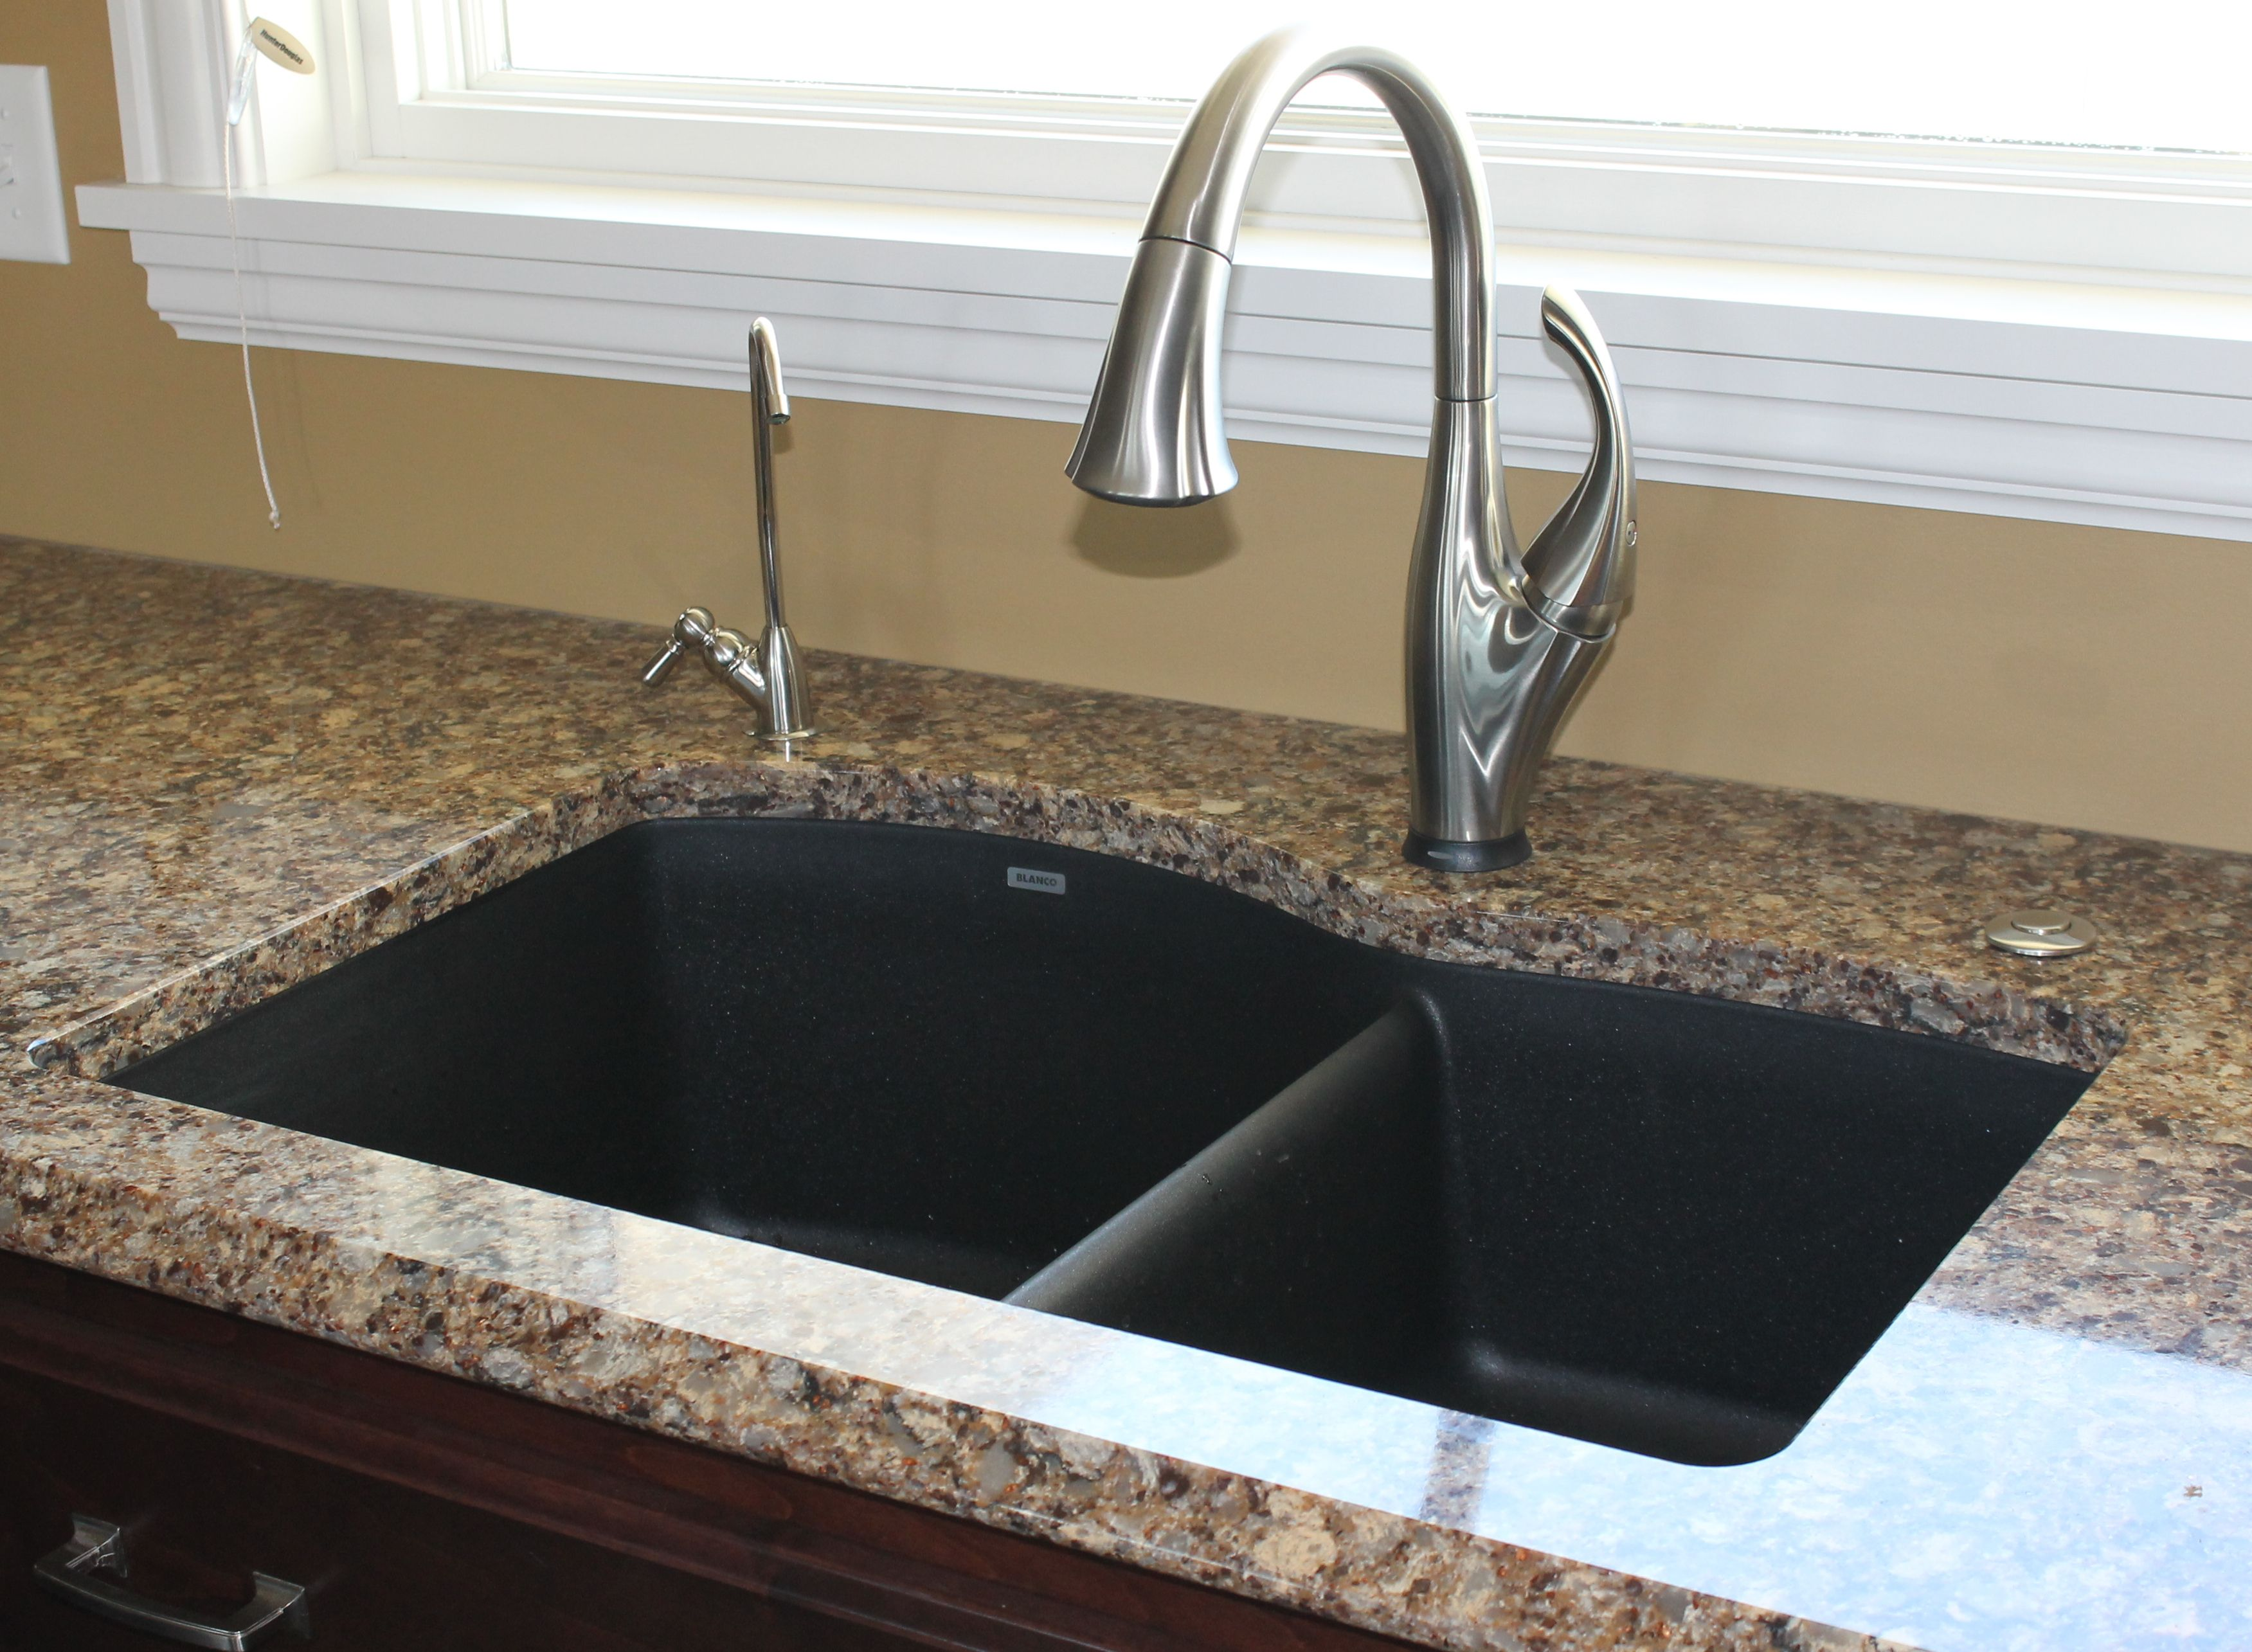 Love the Blanco SILGRANIT® kitchen sinks! Pair it with a